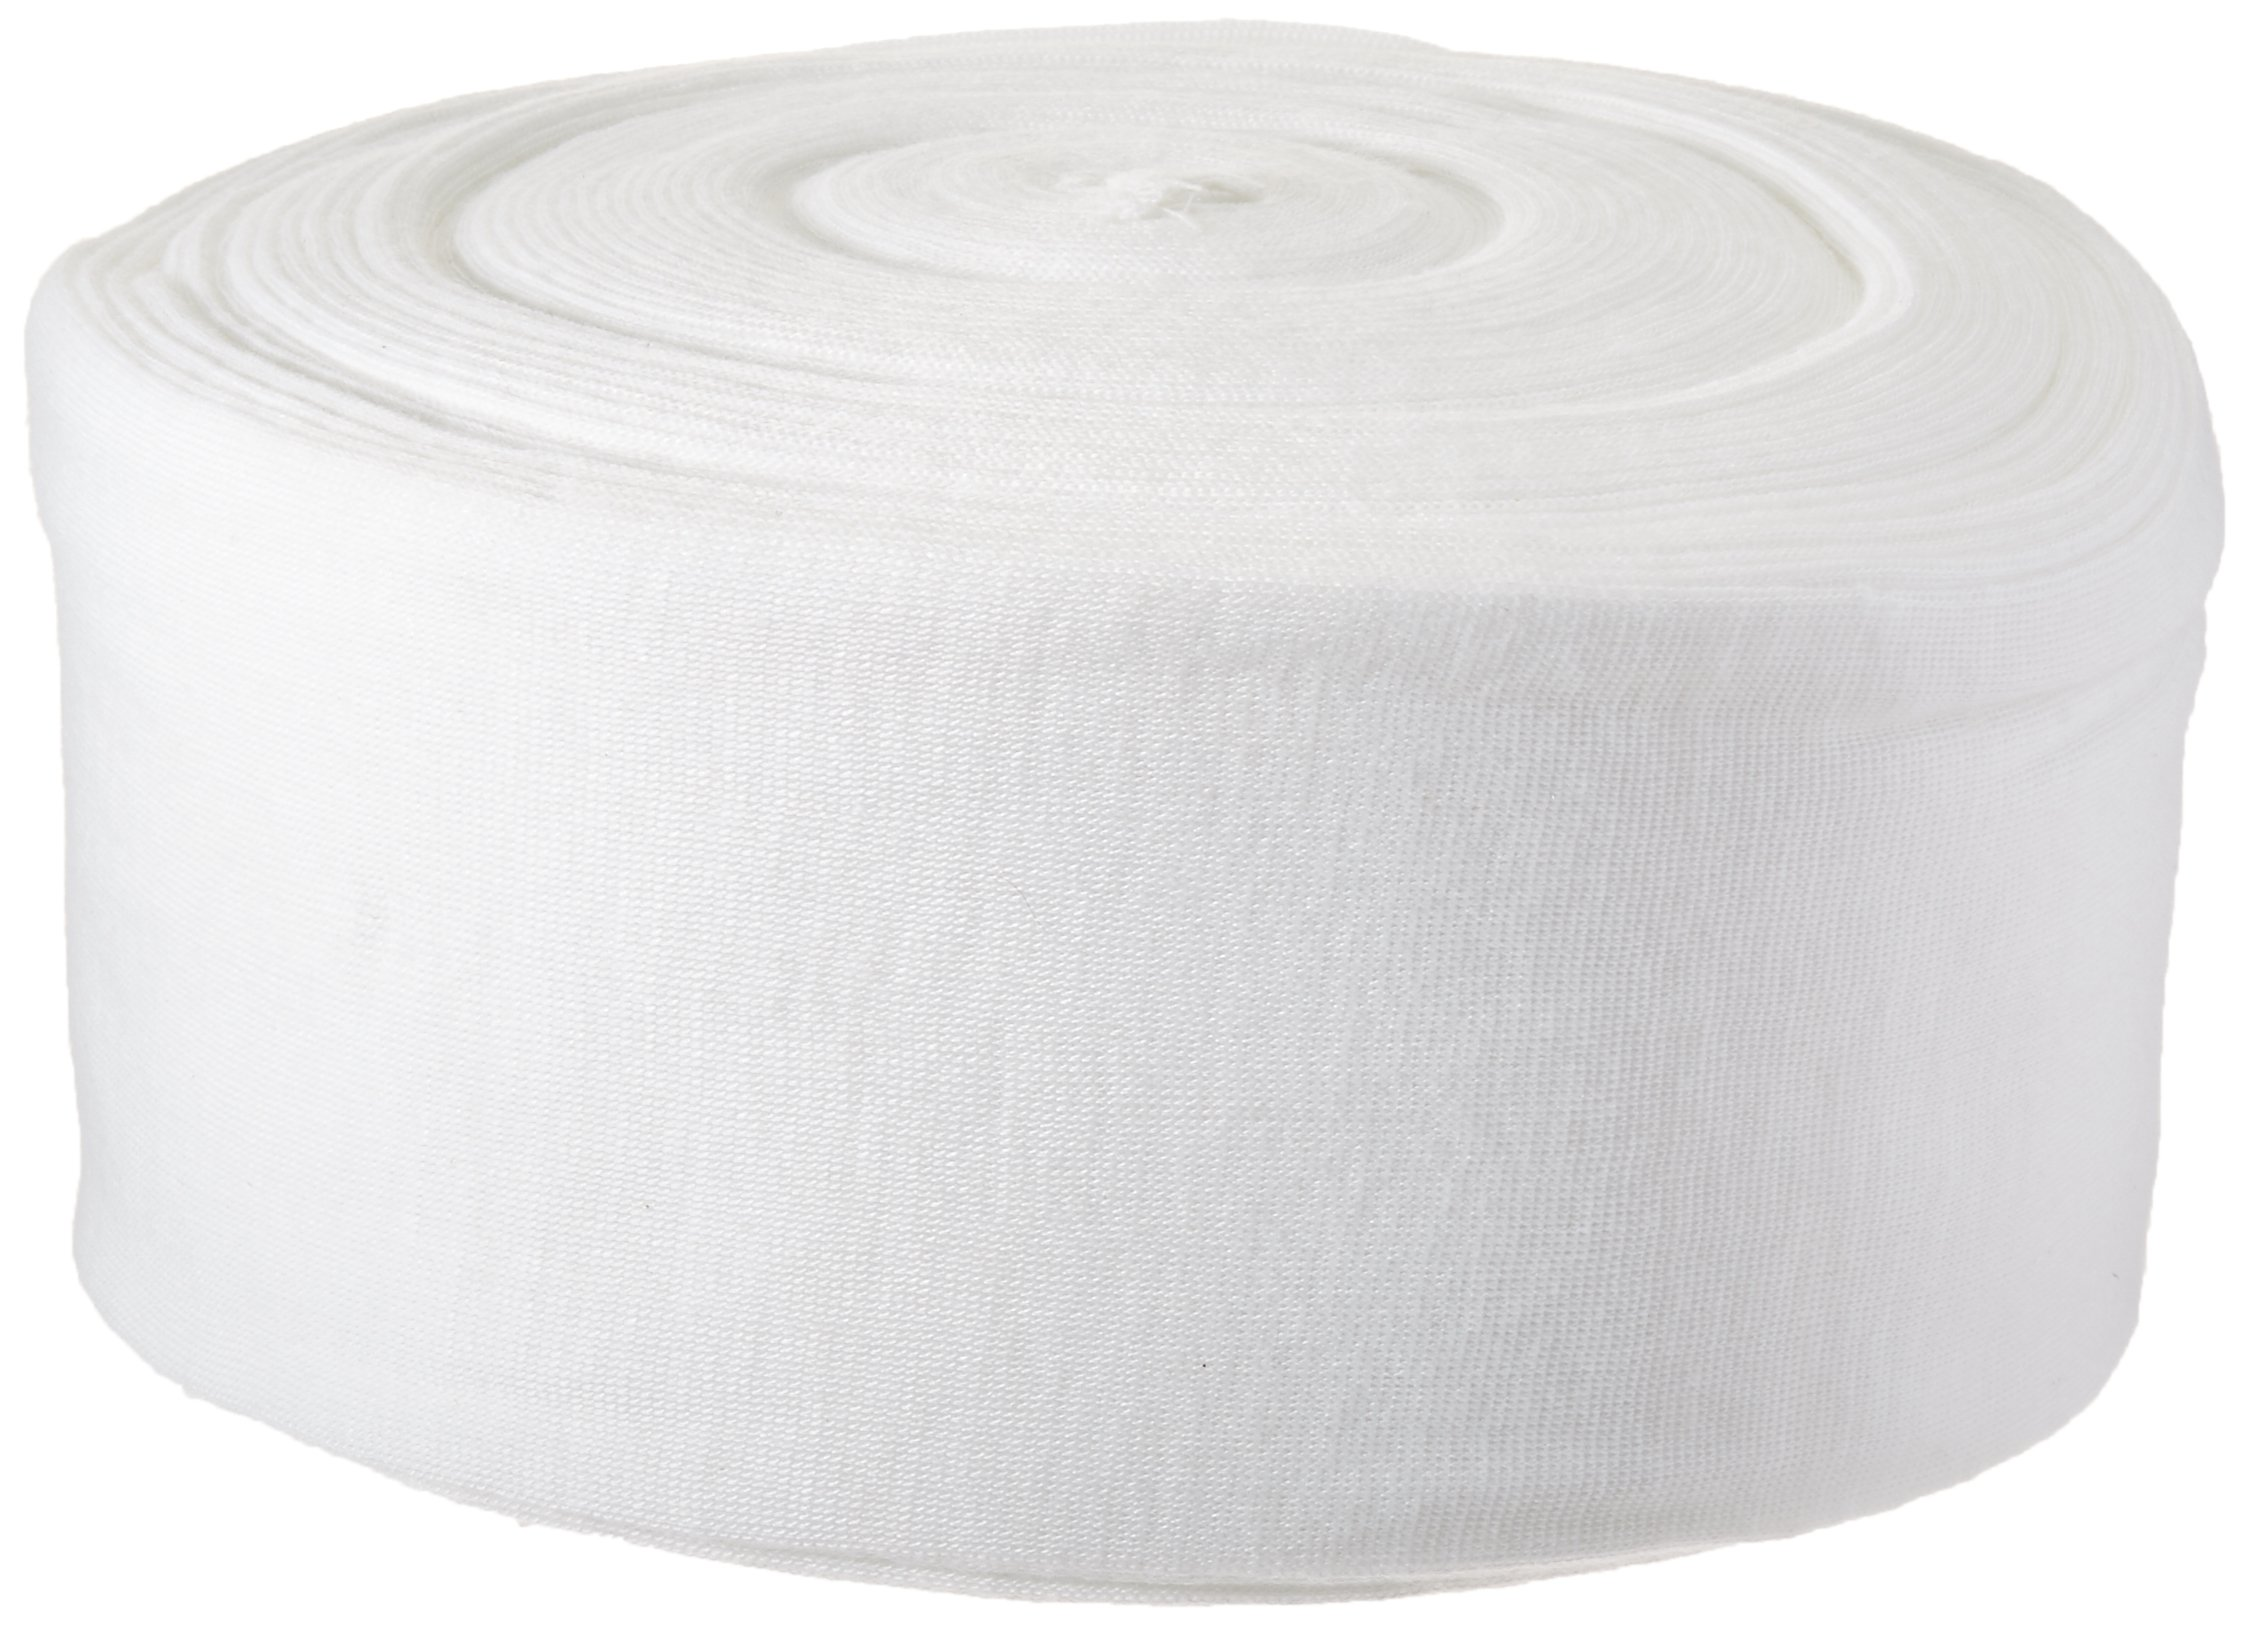 Rolyan Stockinette with Anti-Microbial Built-In, Multiple Sizes, 25 Yard Roll, Tubular Arm Stockinette for Cast, Brace, and Splint Padding, Odor Resistant, Antimicrobial, 100% Polyester Wrap